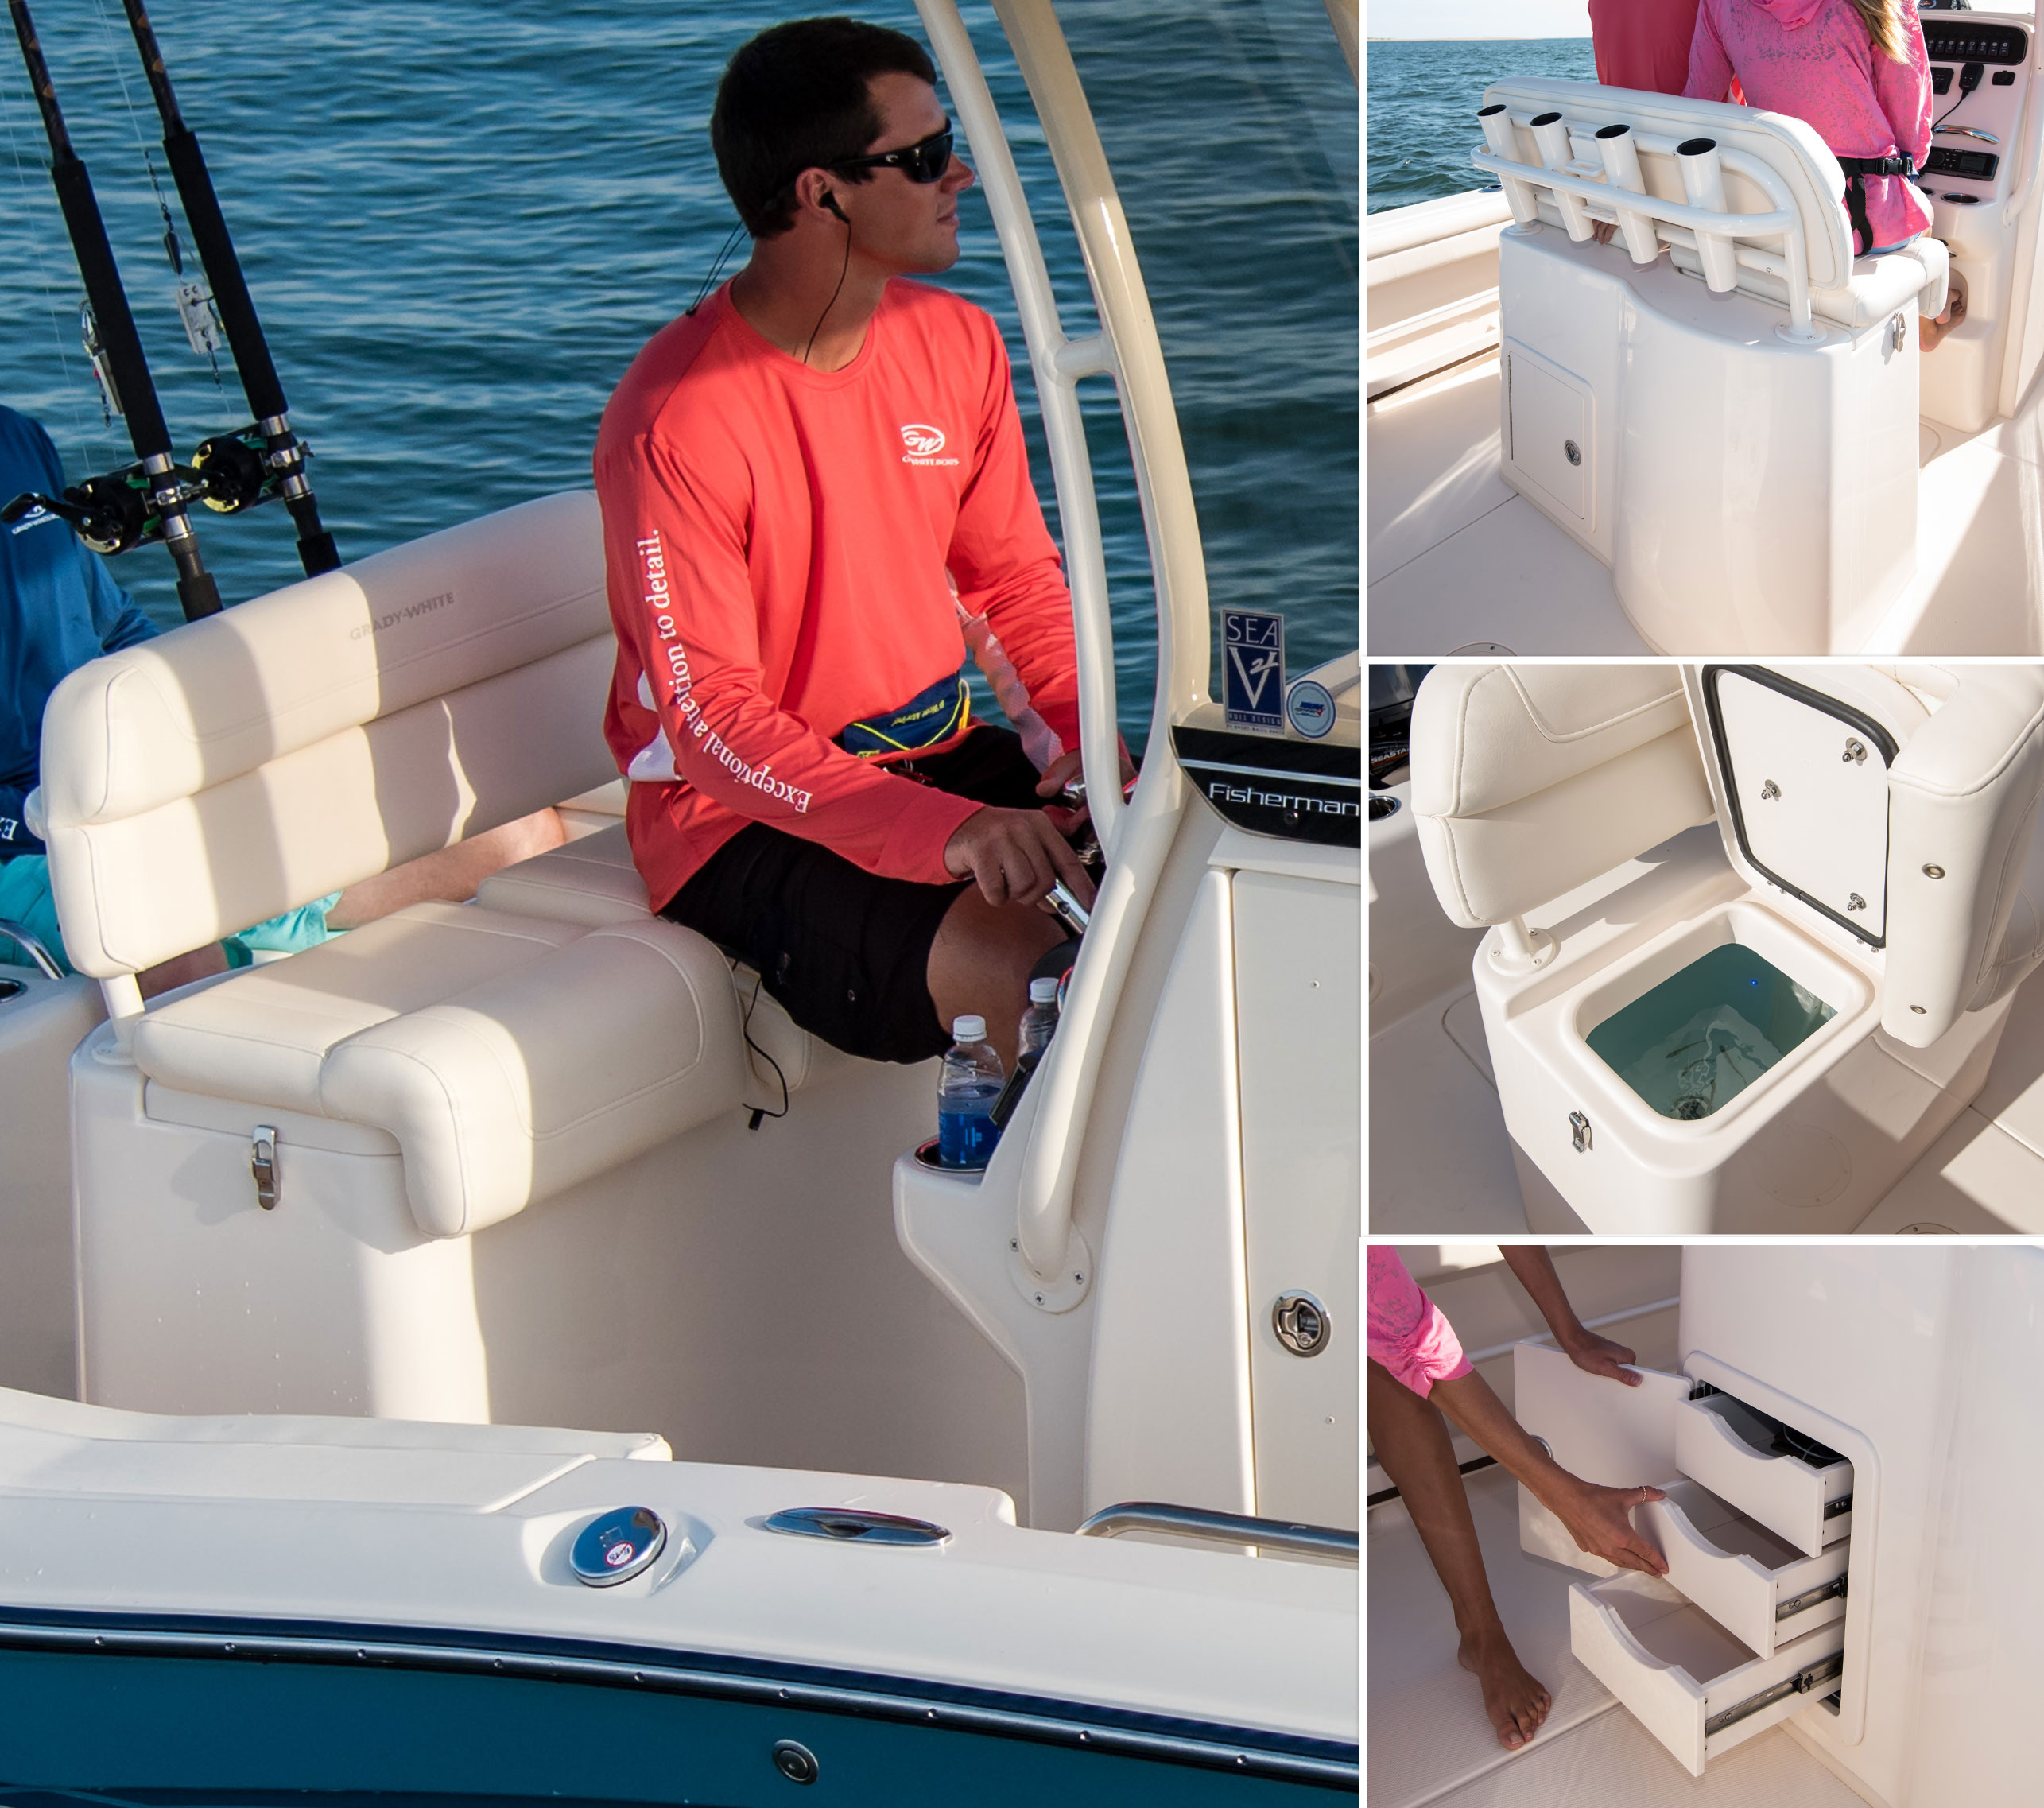 Fisherman 216 deluxe lean bar with livewell, lockable storage, tackle trays and four rod holders.